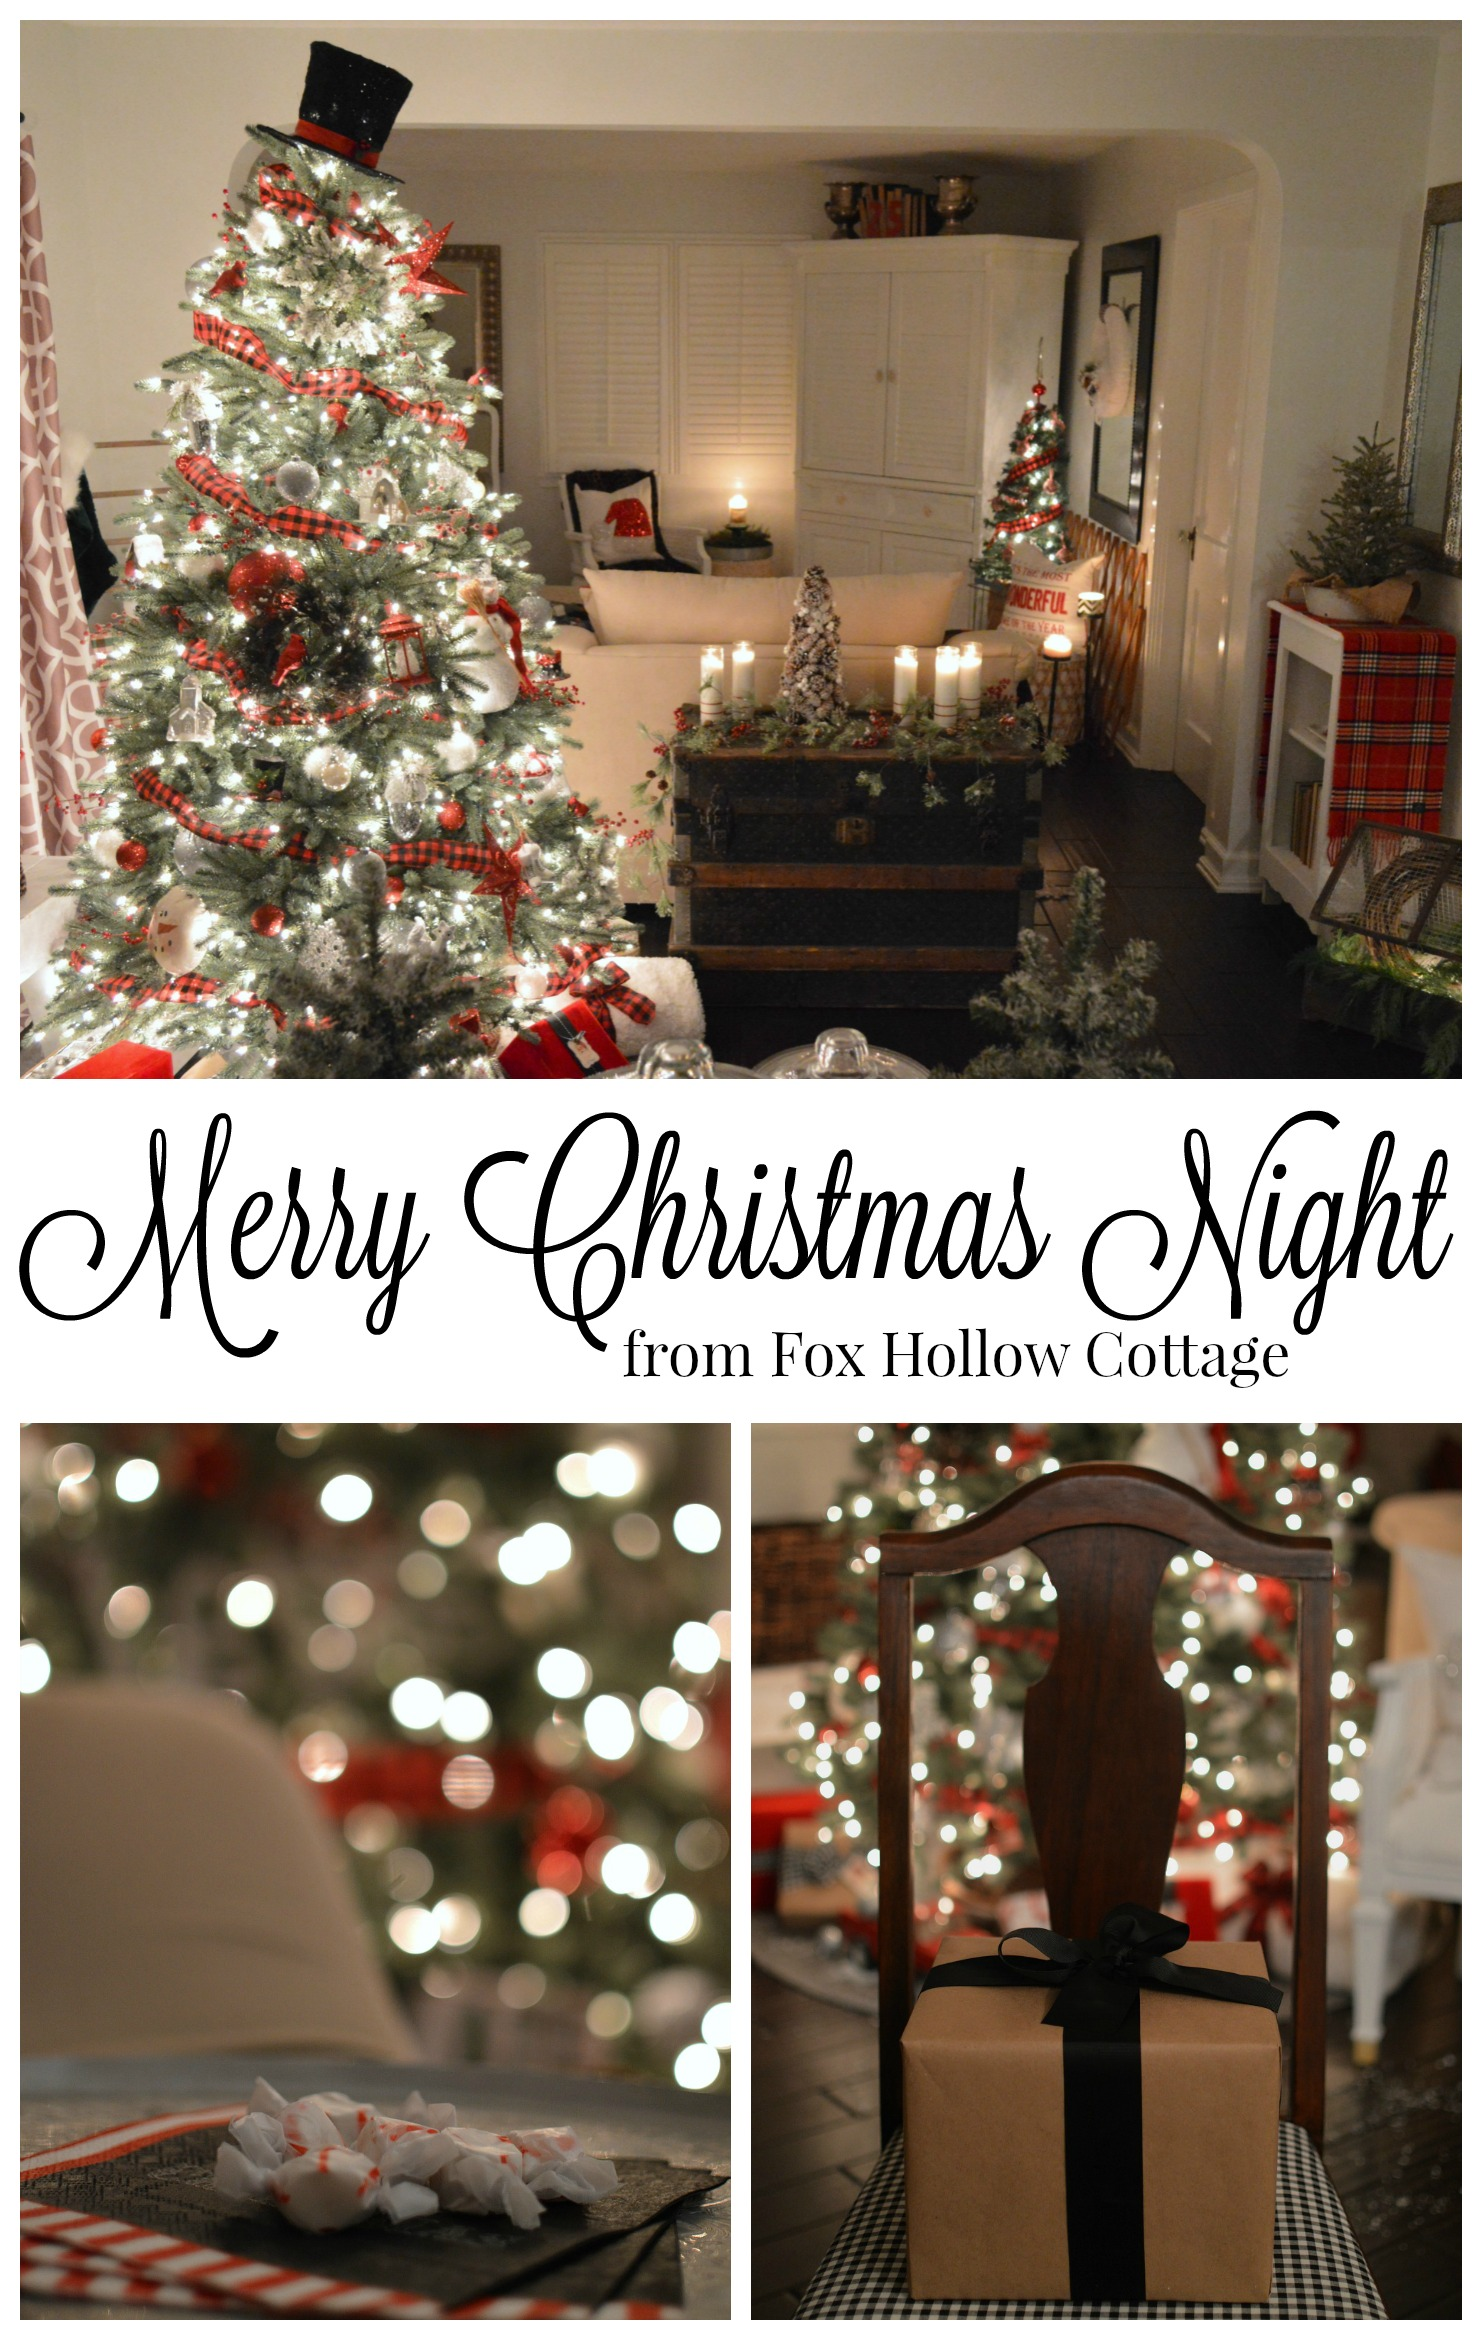 Merry Christmas Night from Fox Hollow Cottage